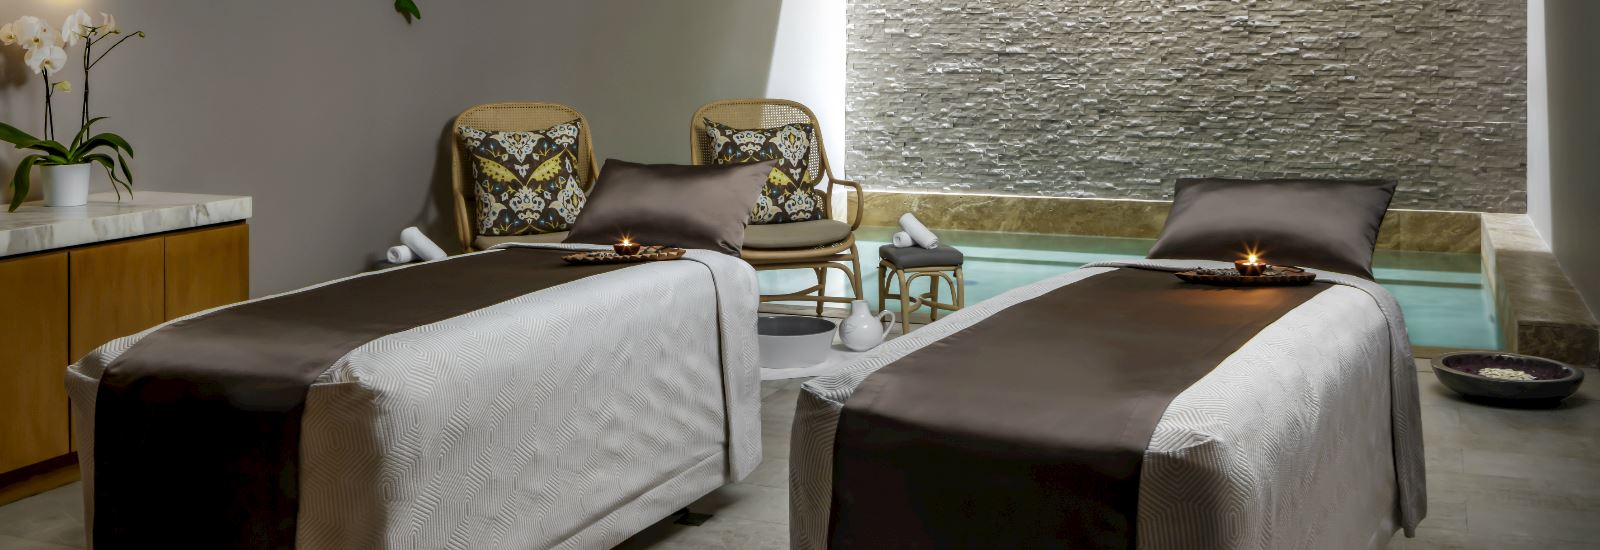 Grand Velas Los Cabos Spa Room